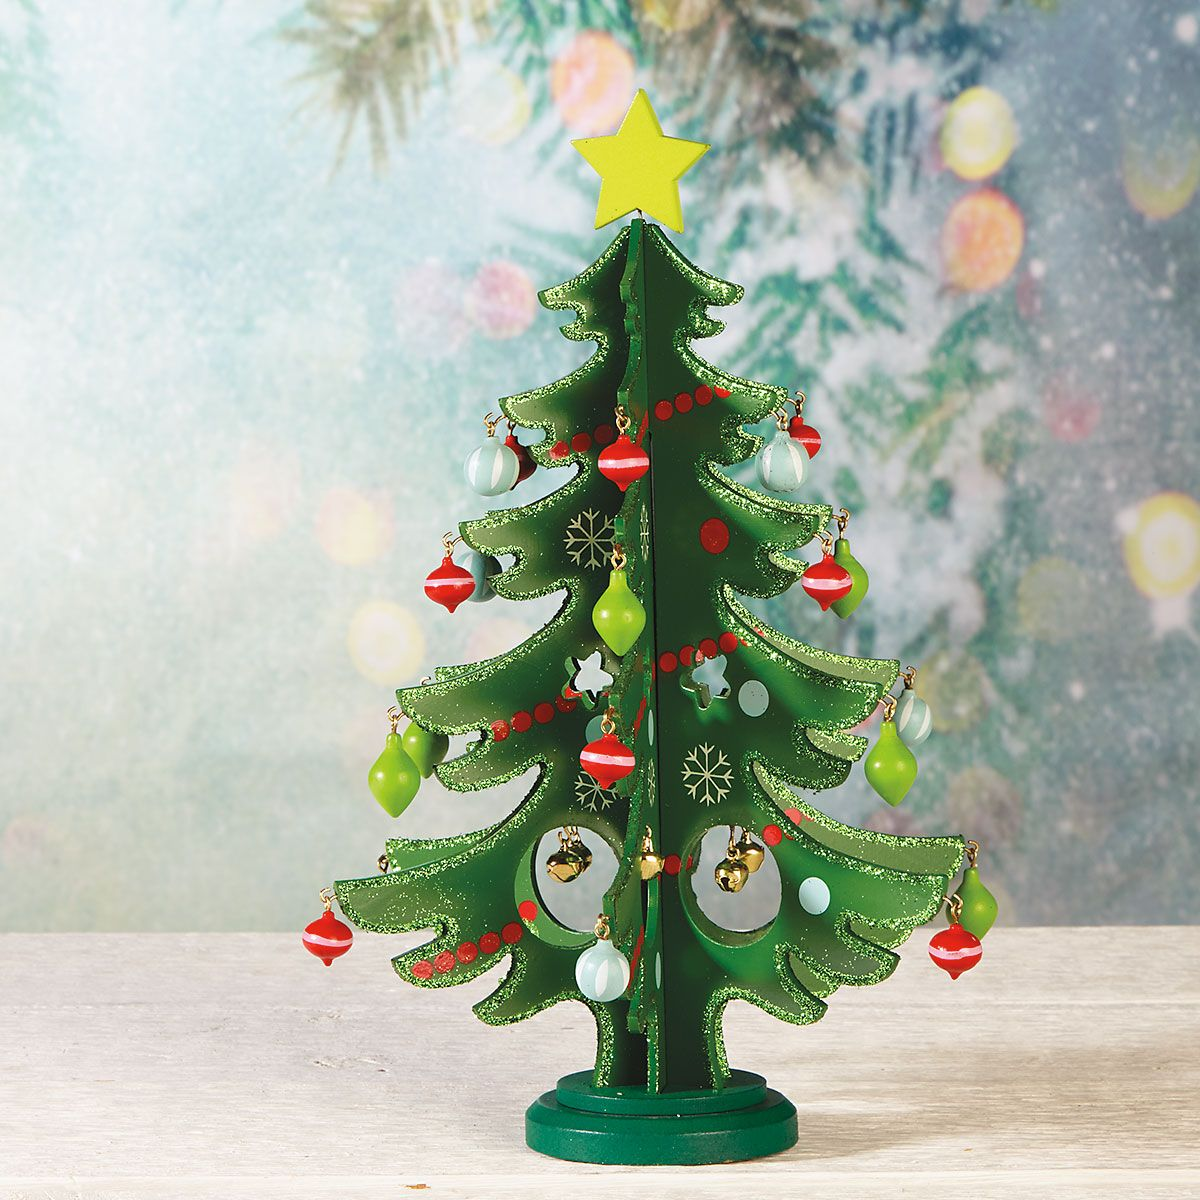 Wooden Tabletop Christmas Tree with Ornaments